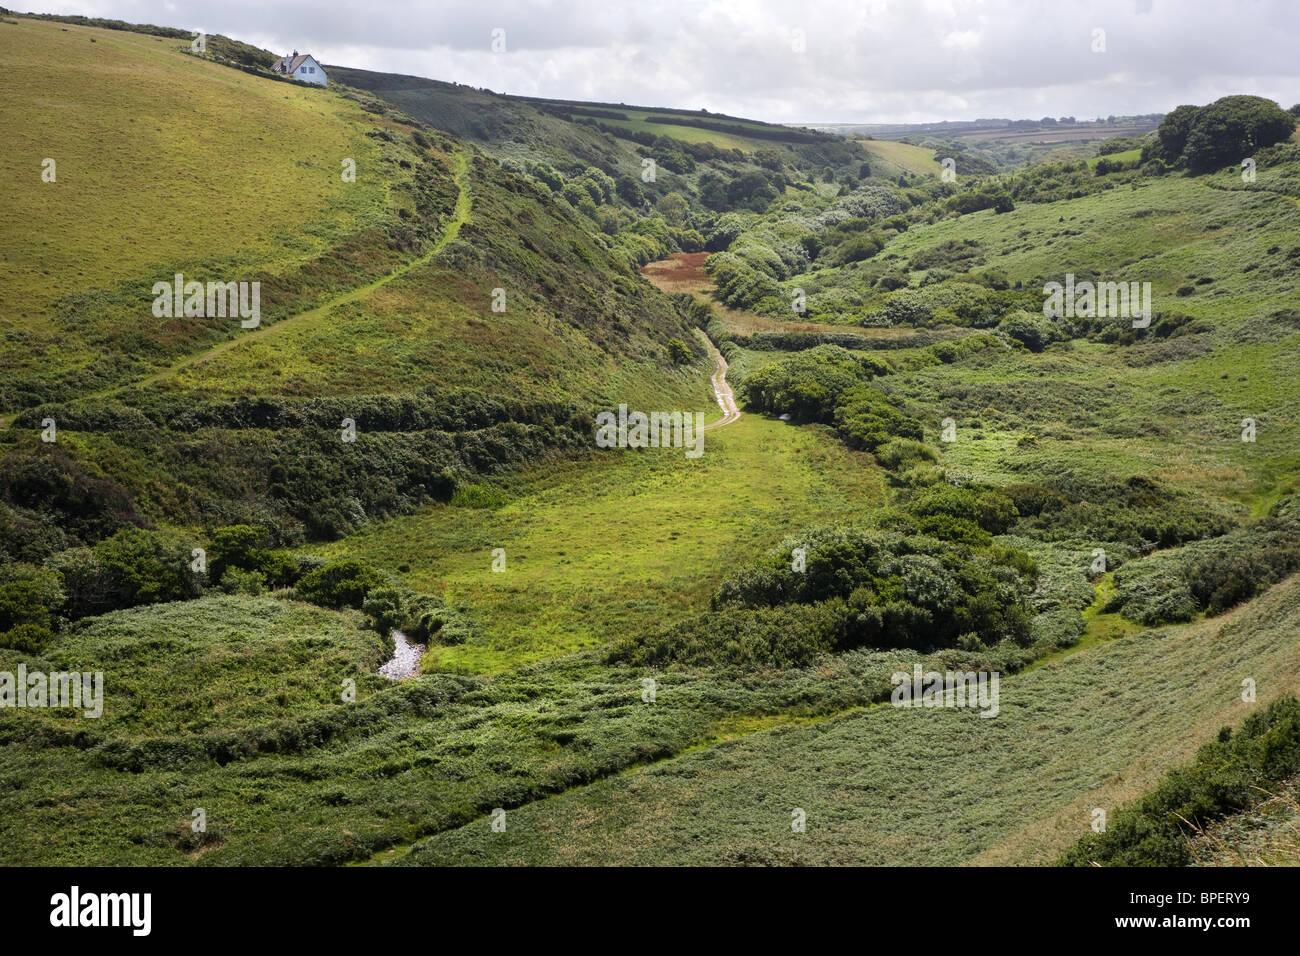 Speke's Mill valley from Swansford Hill looking towards Docton Mill on the South West coast path in North Devon - Stock Image